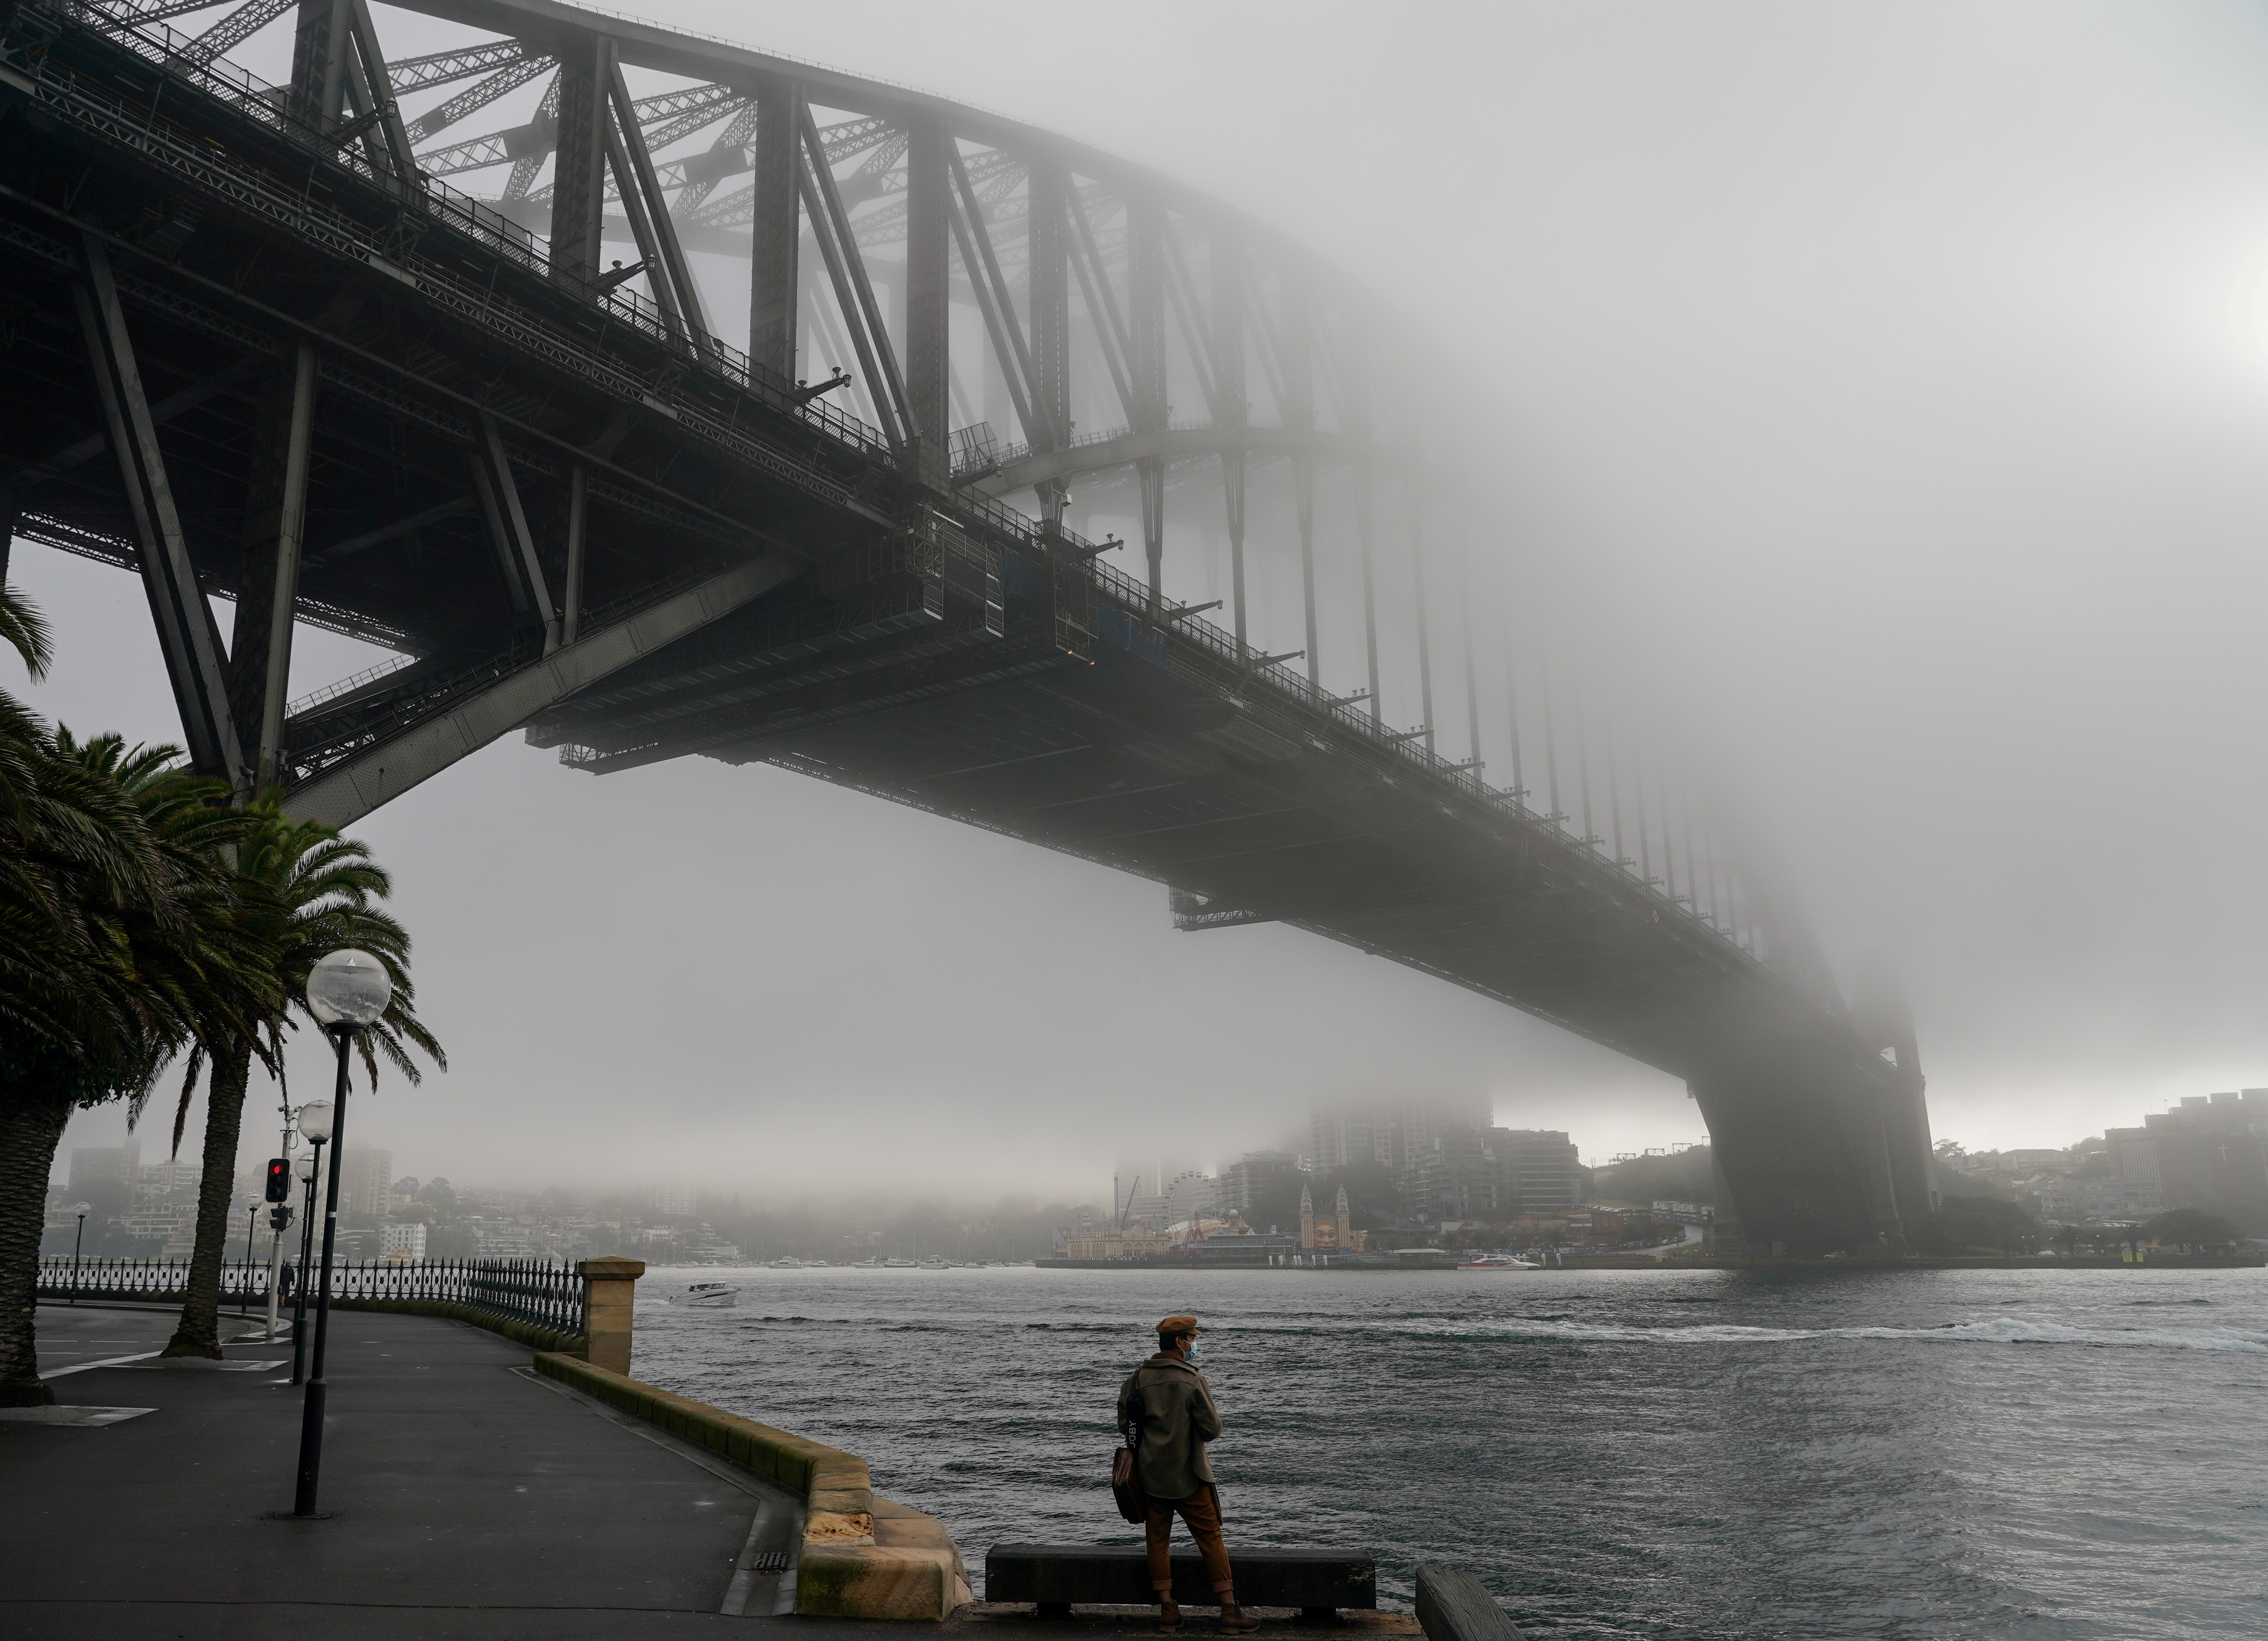 A man wearing a protective face mask takes in the waterfront view underneath the Sydney Harbour Bridge, seen shrouded in fog, during a lockdown to curb the spread of a coronavirus disease (COVID-19) outbreak in Sydney, Australia, June 30, 2021. REUTERS/Loren Elliott     TPX IMAGES OF THE DAY - RC2NAO9MCMR5